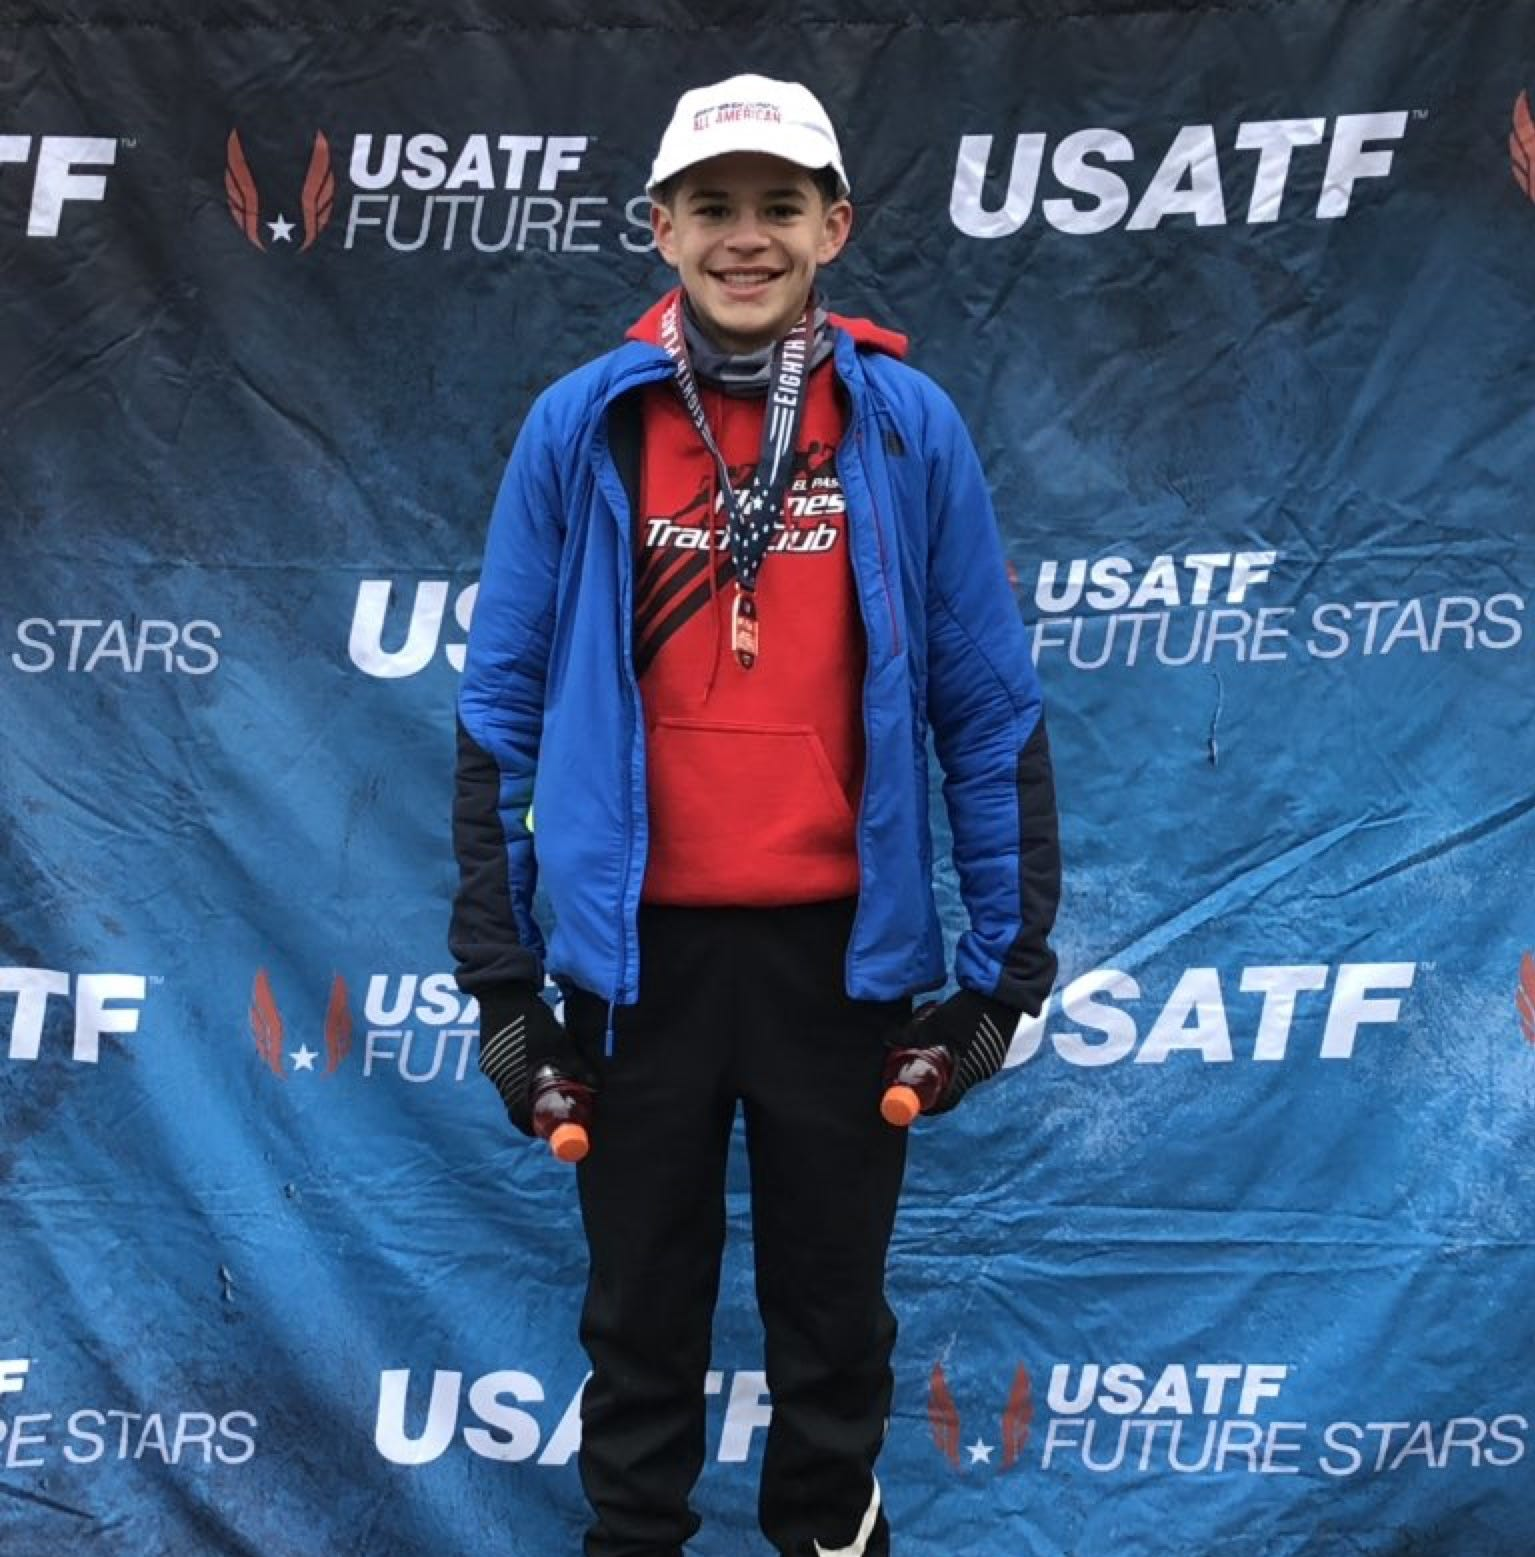 Americas runner Jared Laverty places eighth at national meet